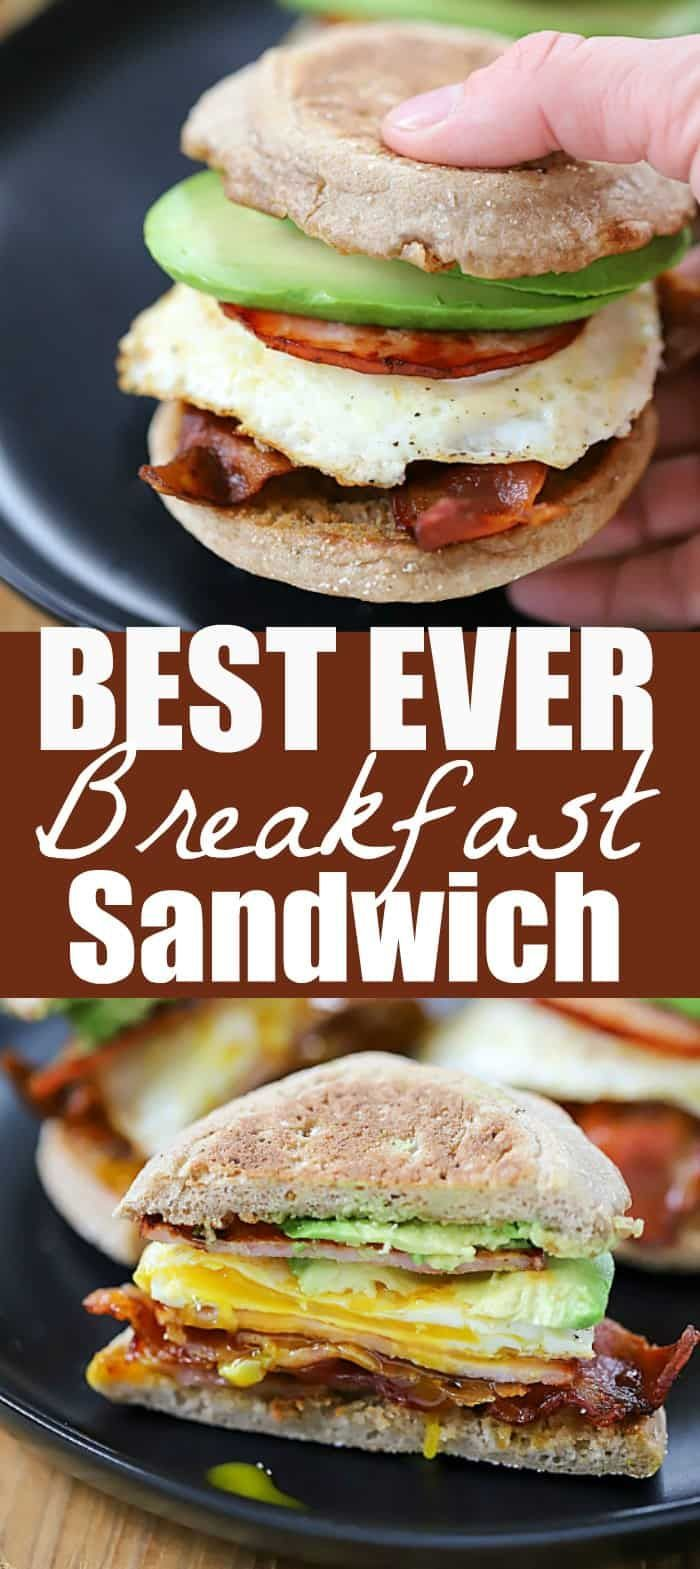 Egg, Bacon and Avocado Breakfast Sandwich Start your morning off right with this Egg, Bacon and Avo